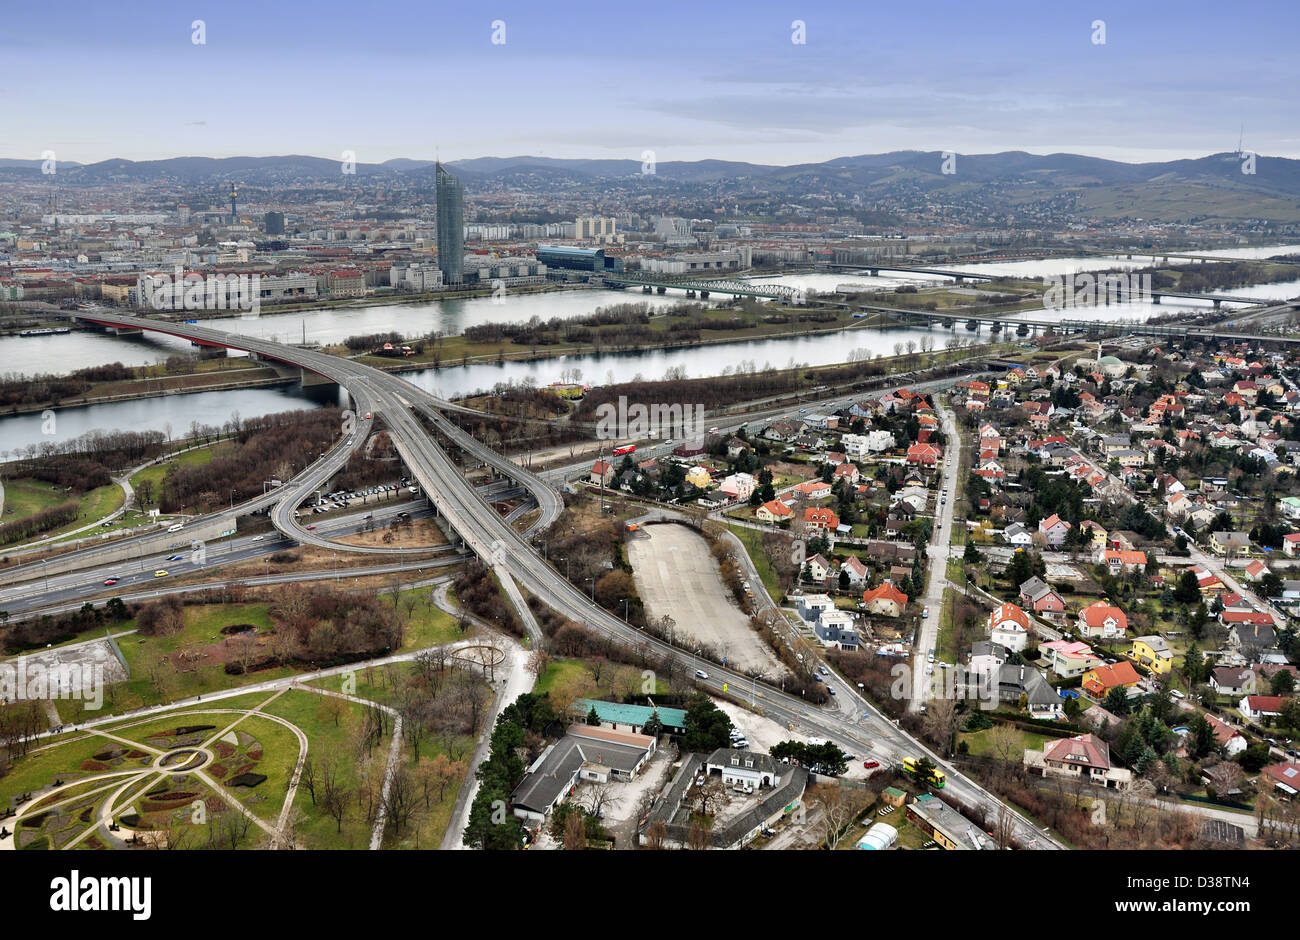 Vienna cityscape with Danube, New Danube, crossroad and four bridges - Stock Image